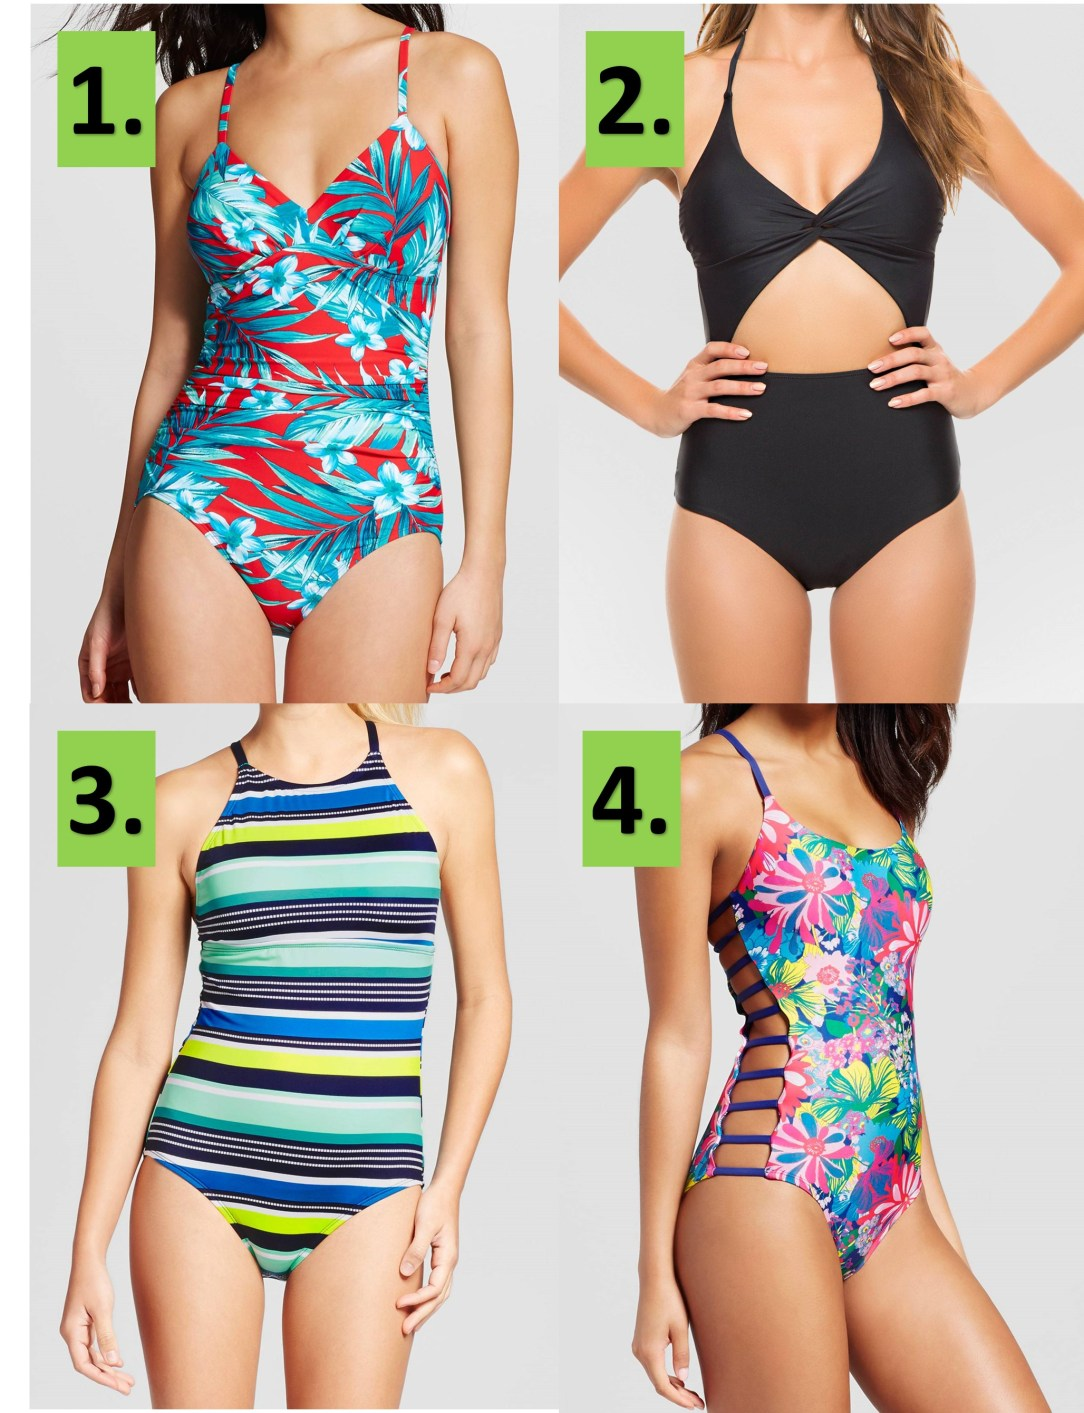 Swimsuits 1